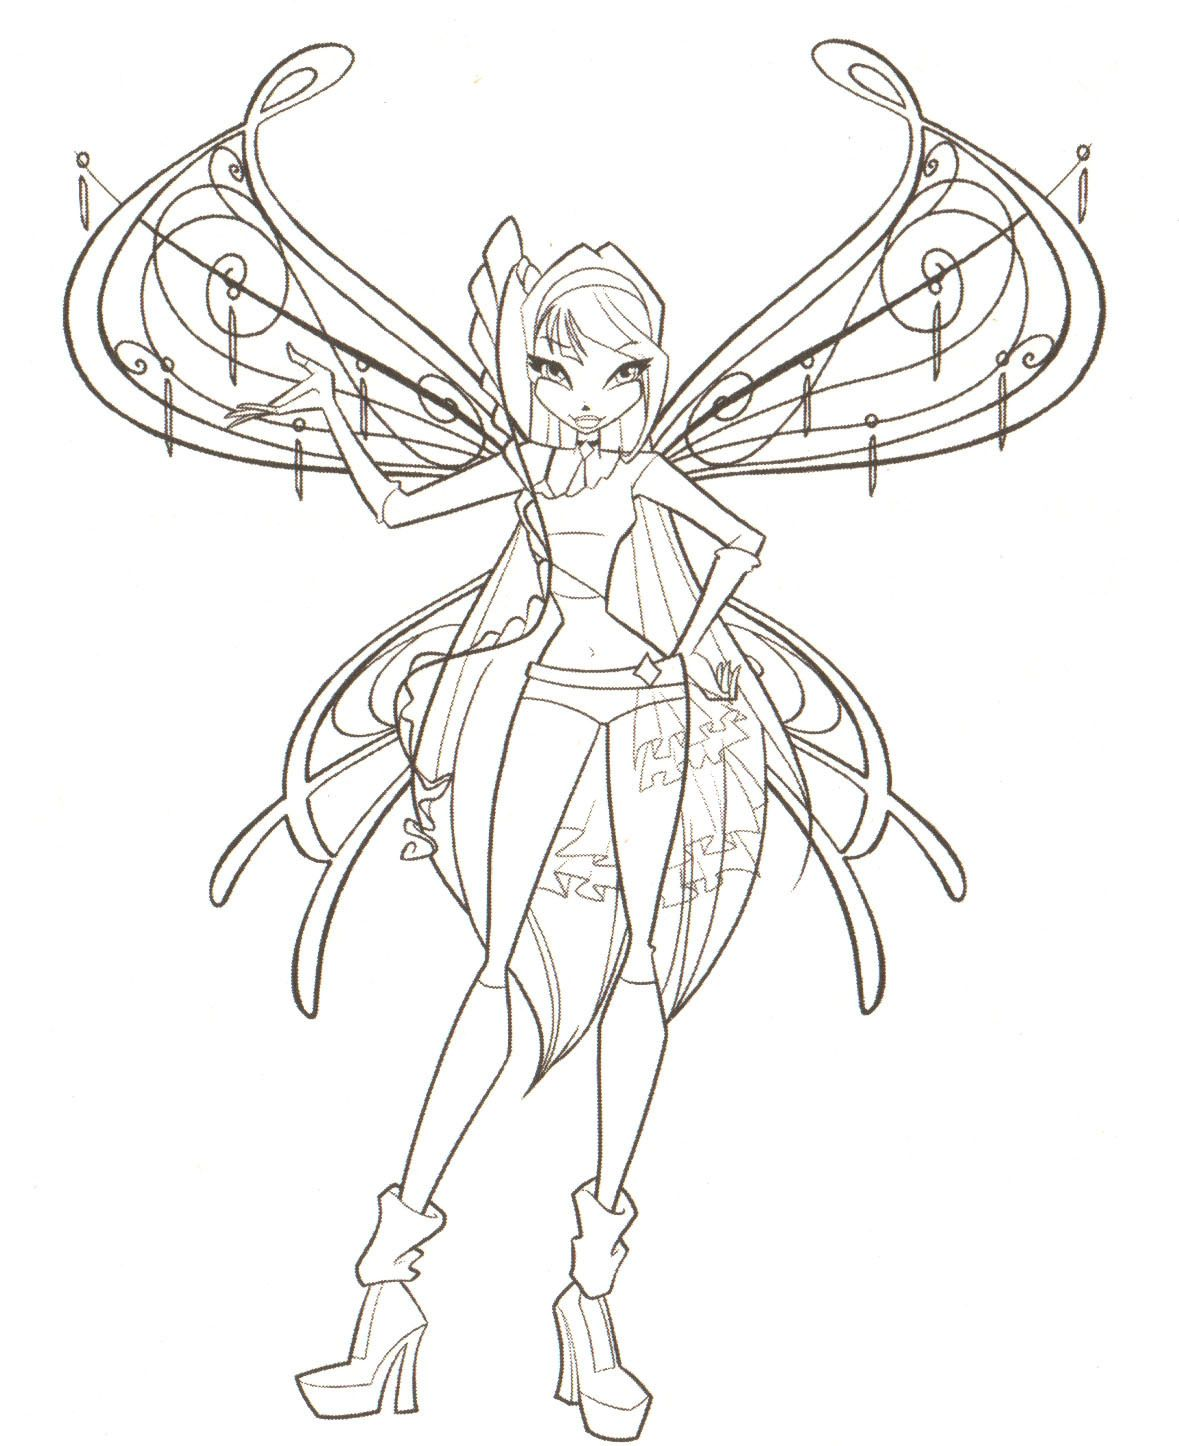 The Winx Club Photo Coloring Pages Coloring Pages For Girls Coloring Pages Cartoon Coloring Pages